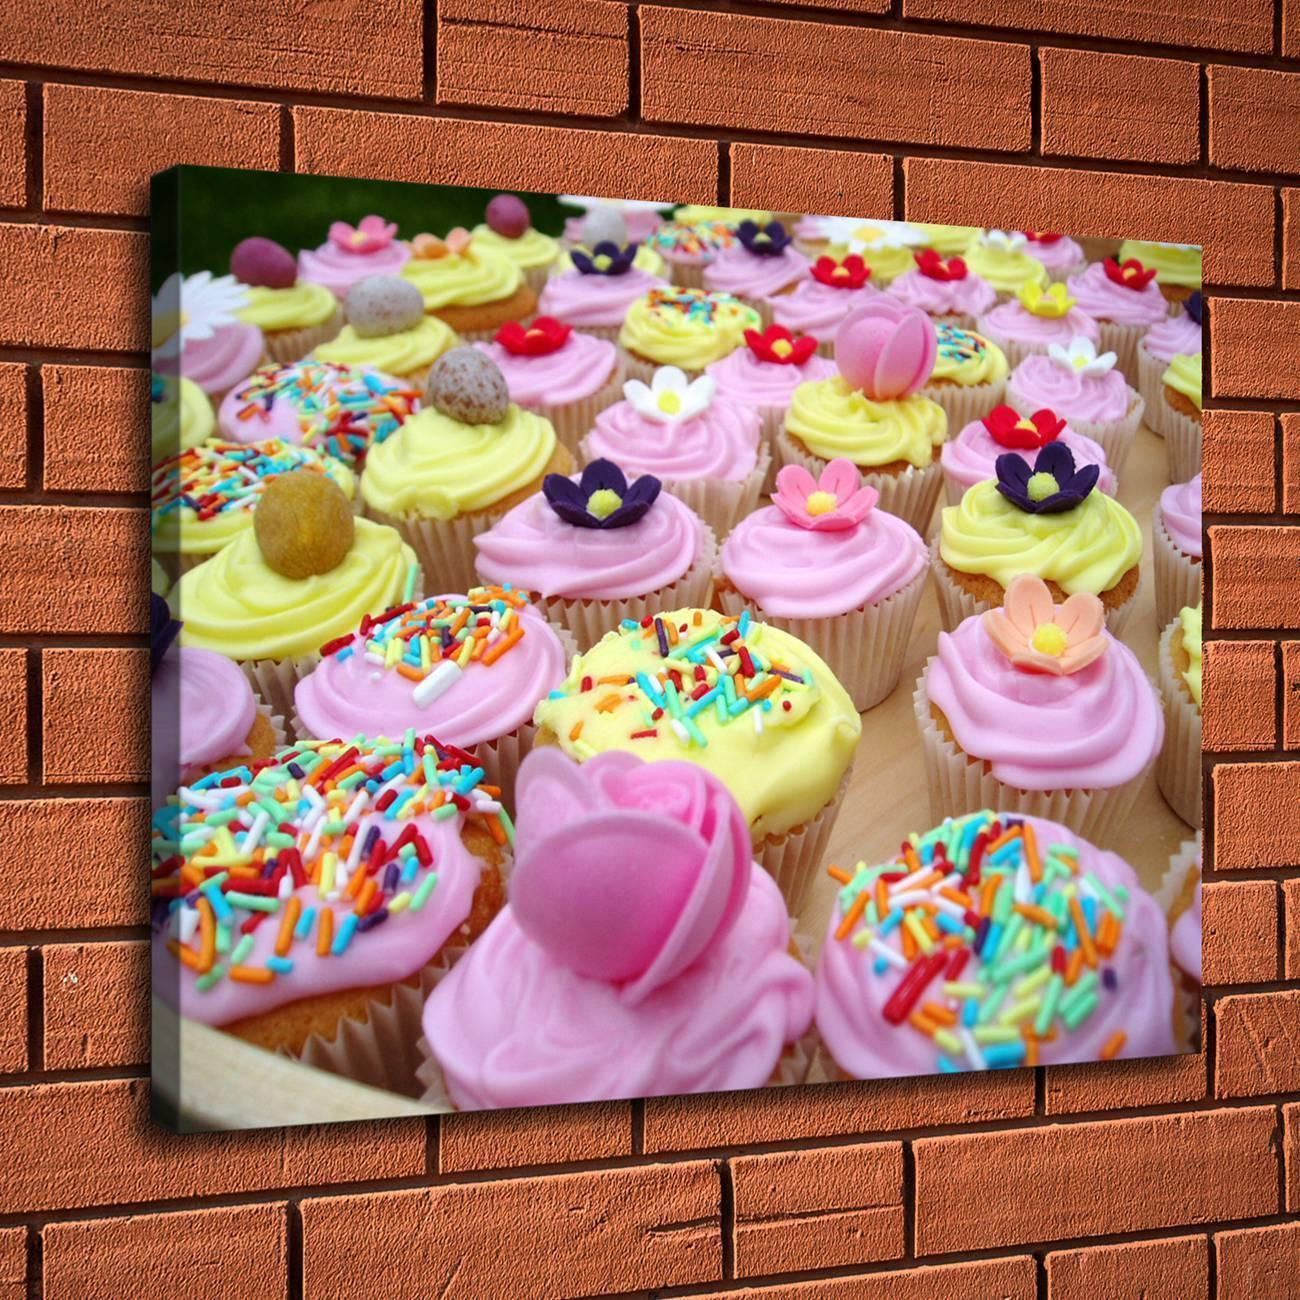 Ful CupcakeHome Decor HD Printed Modern Art Painting On Canvas Unframed Framed From Zym1122 684